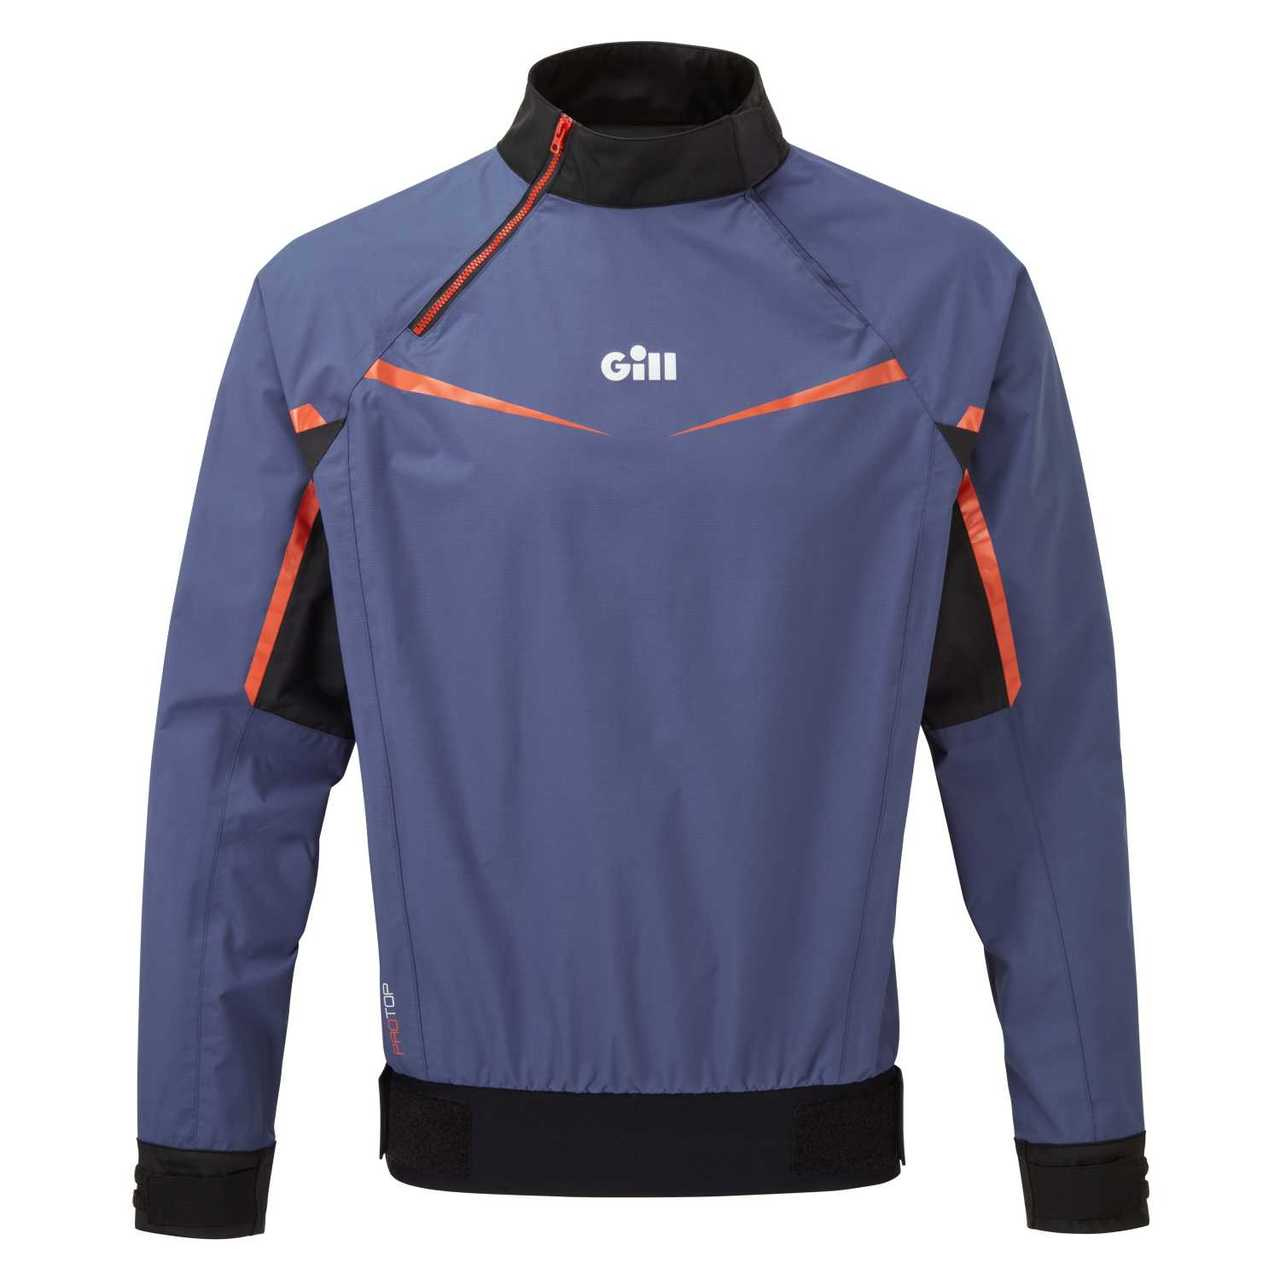 Gill Mens Pro Spray Top